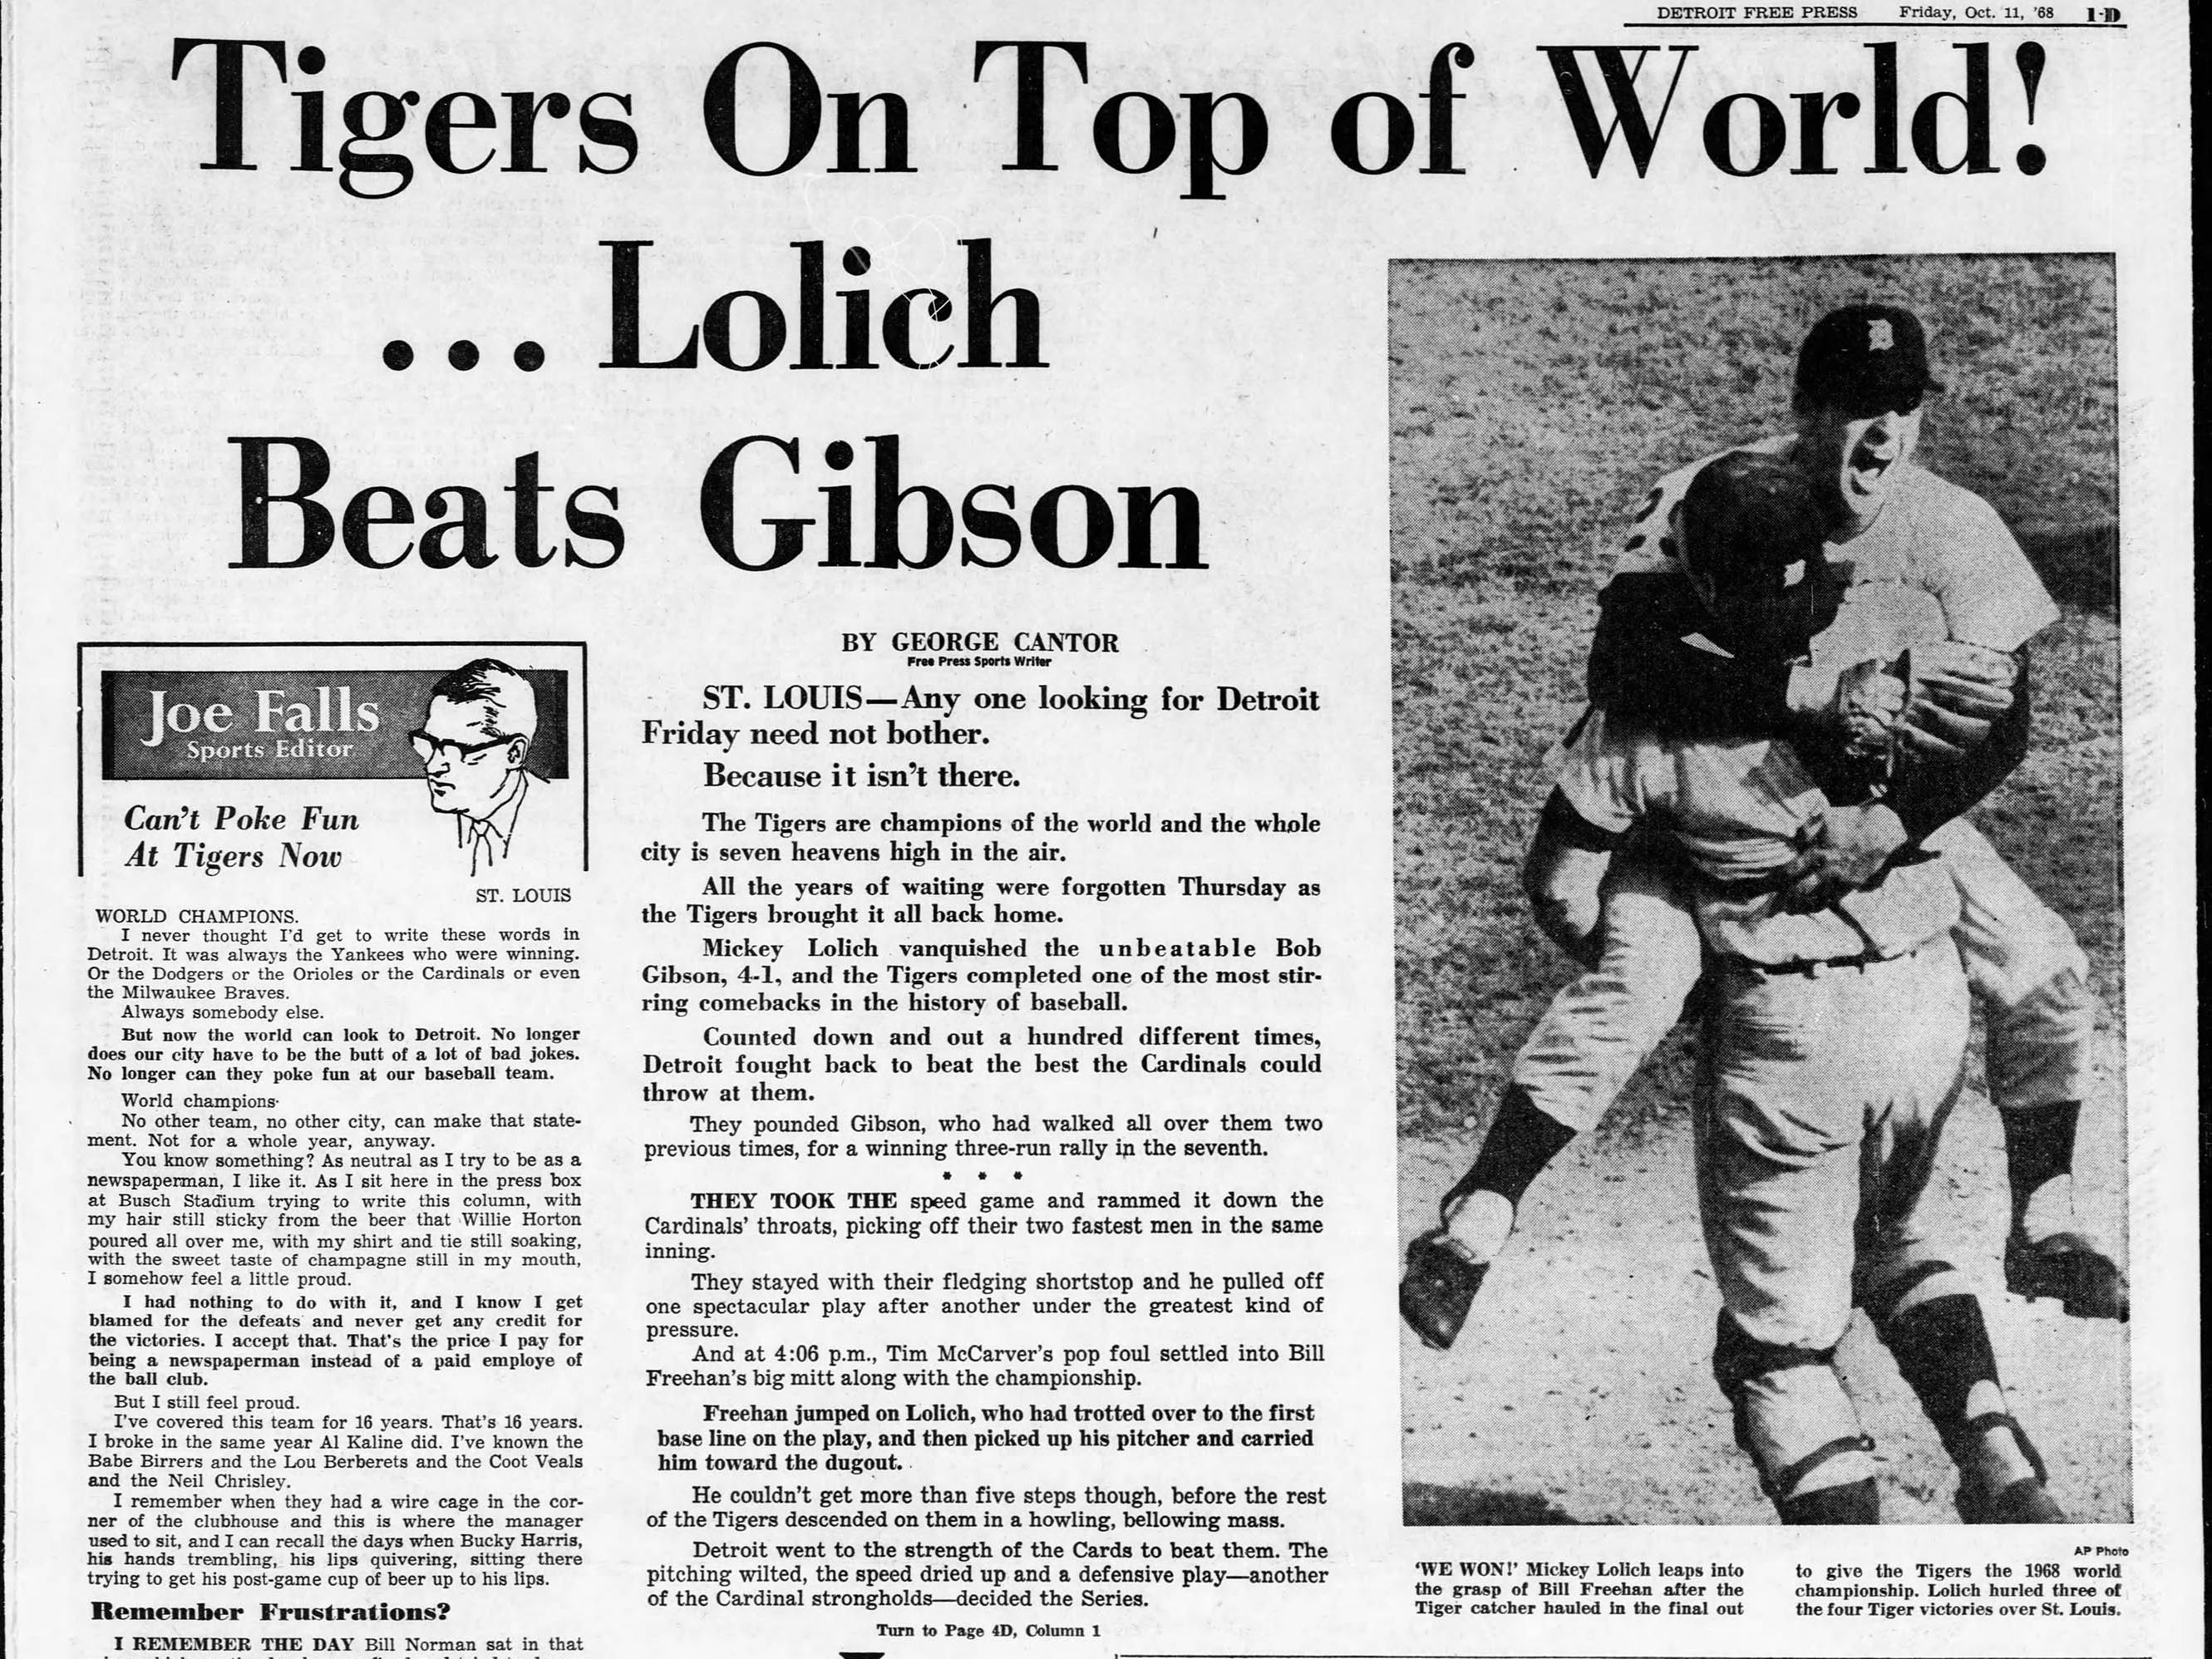 "The Detroit Free Press sports front dated Friday, Oct. 11, 1968. The headline, ""Tigers On Top of World! ...Lolich Beats Gibson."